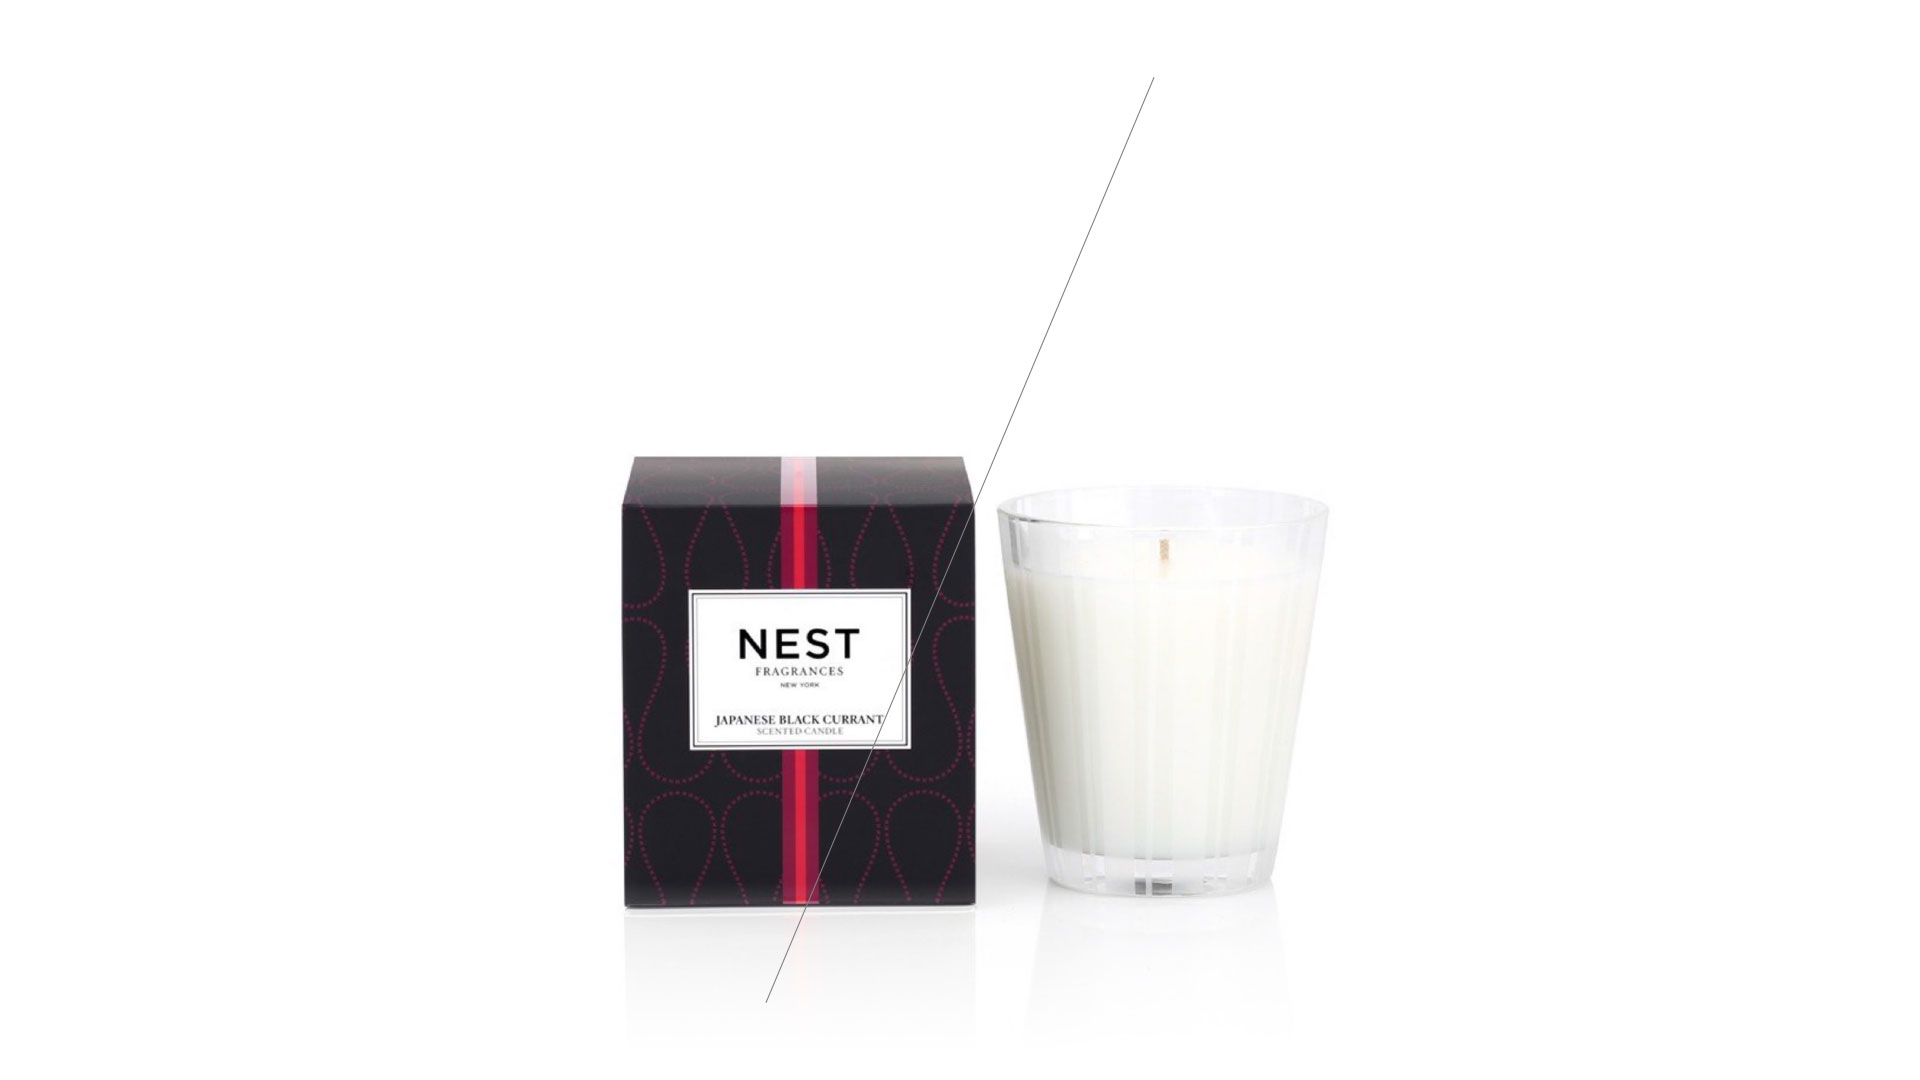 NEST Japanese Black Currant Classic Candle -